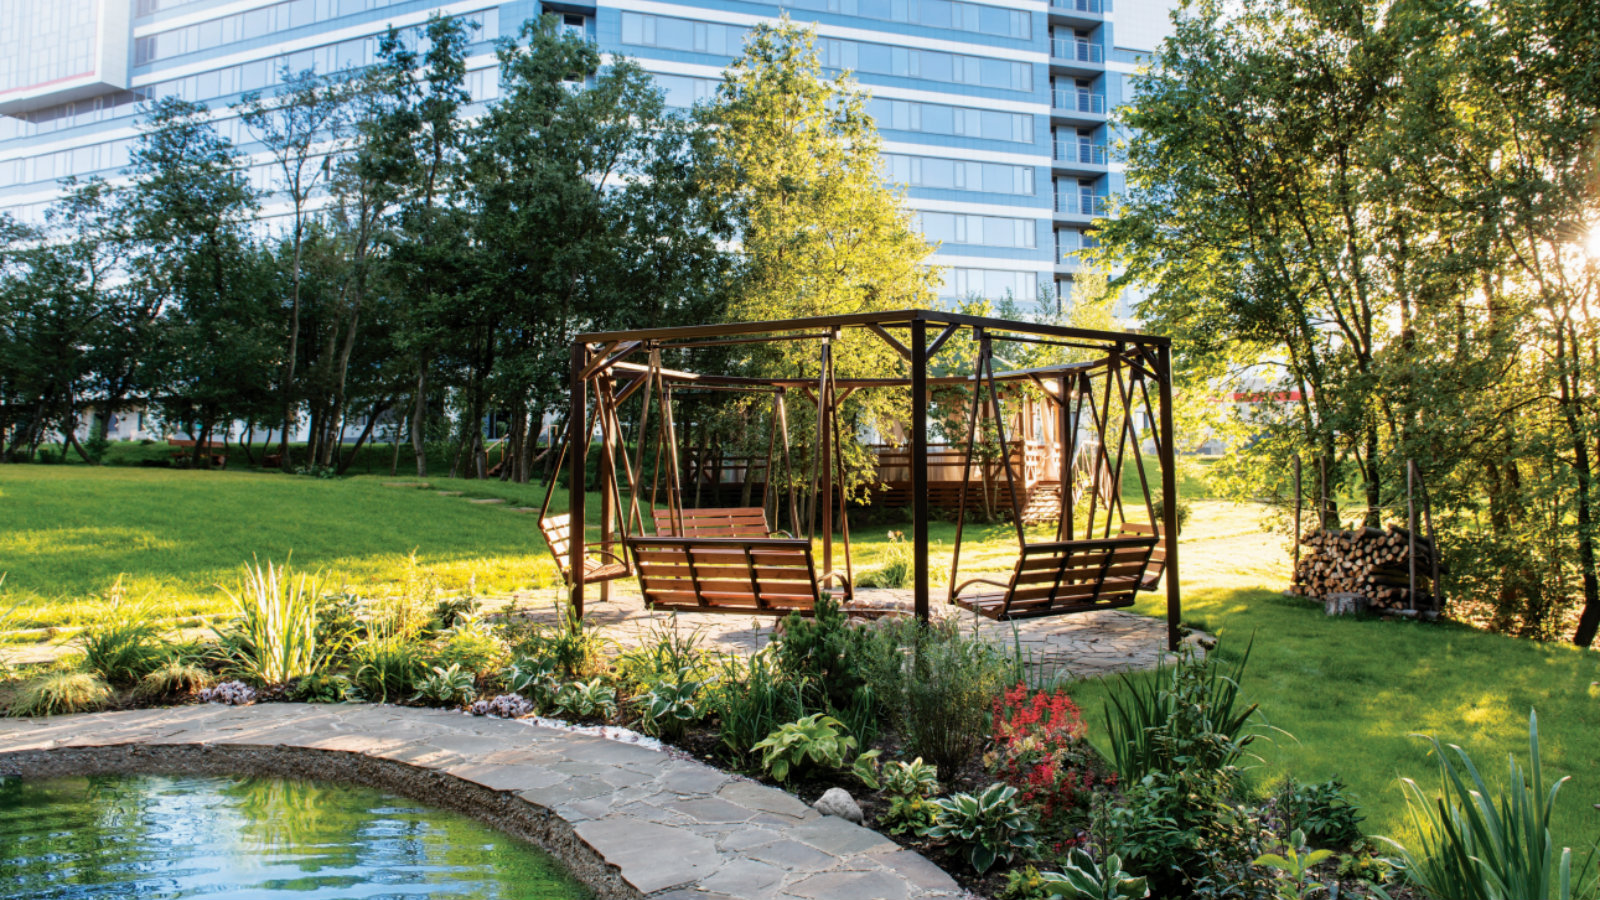 Green relaxation area with a pond at Sheraton Moscow Sheremetyevo